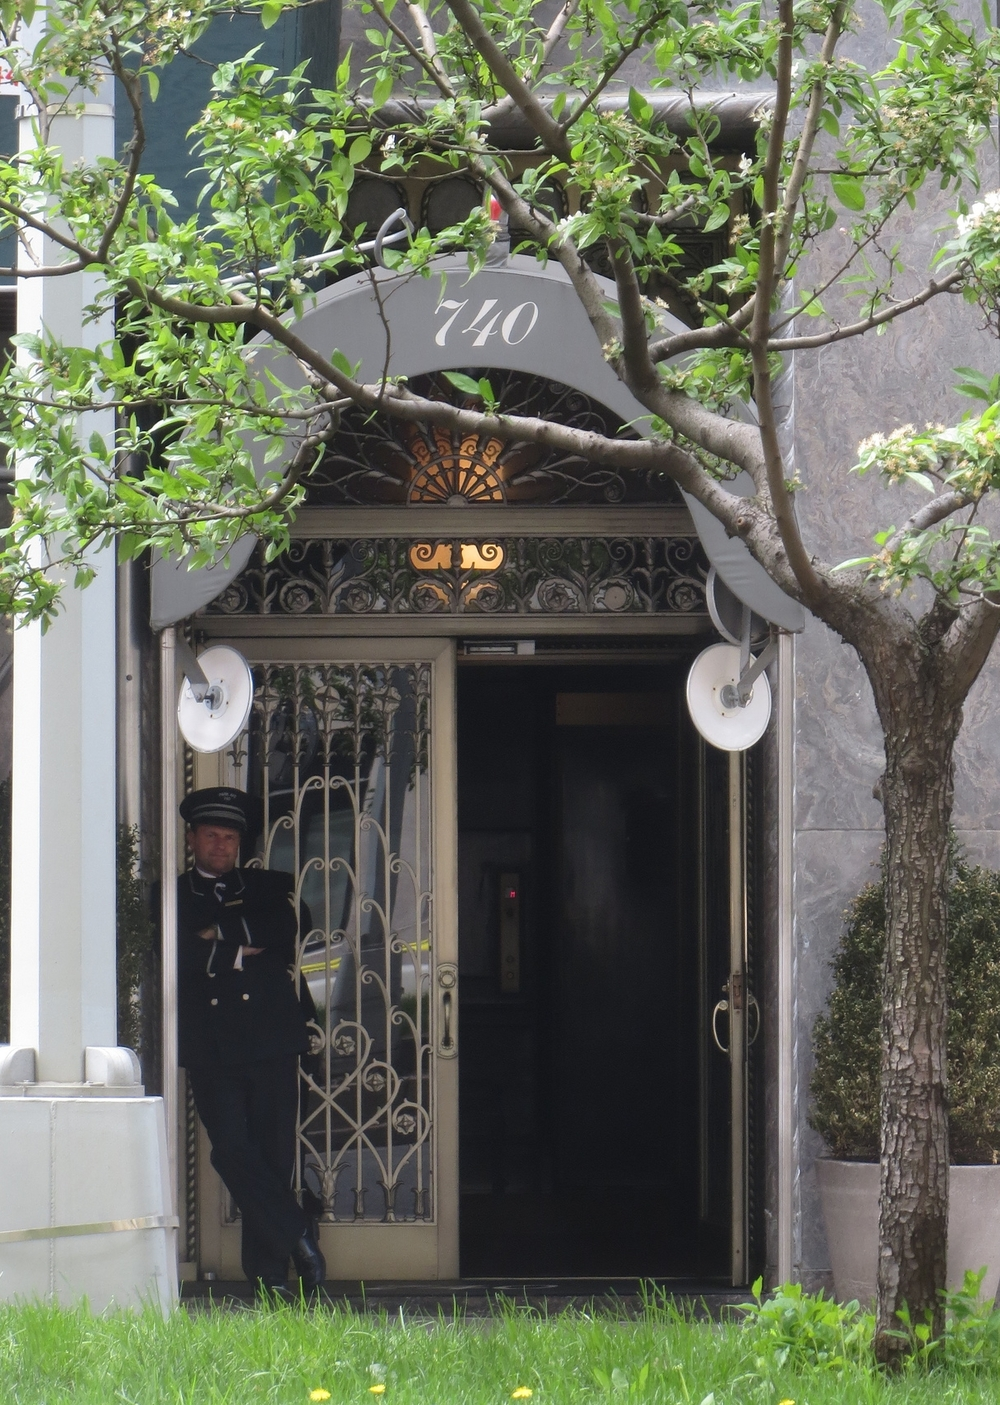 740 Park Avenue Doorman